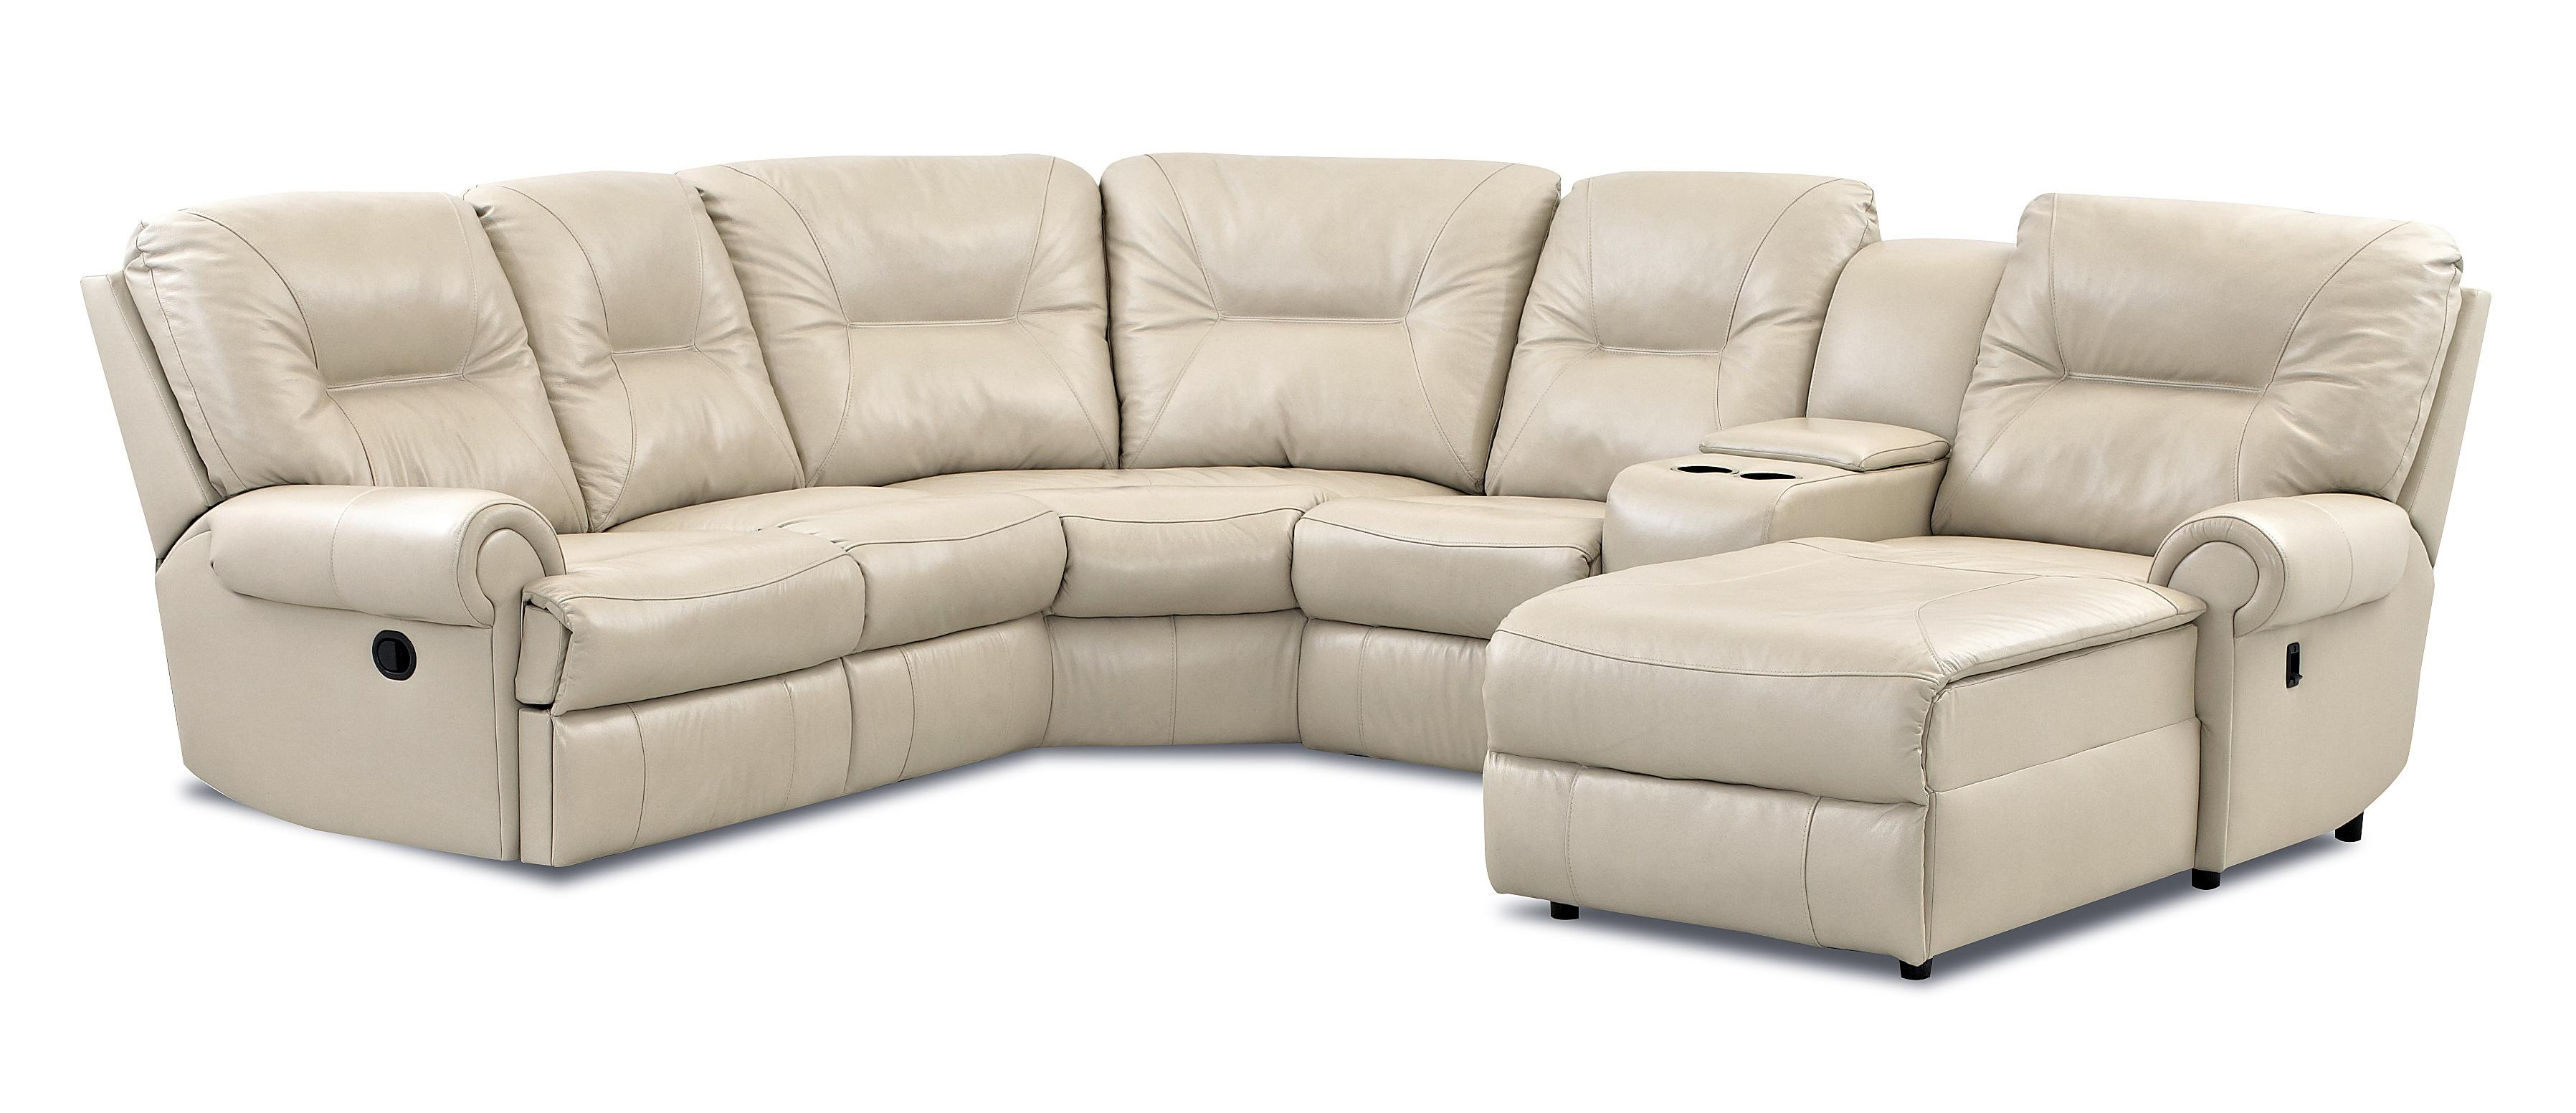 magnifier best david sectional bb pia canyonsect skowski canyon furniture klaussner selling sofa